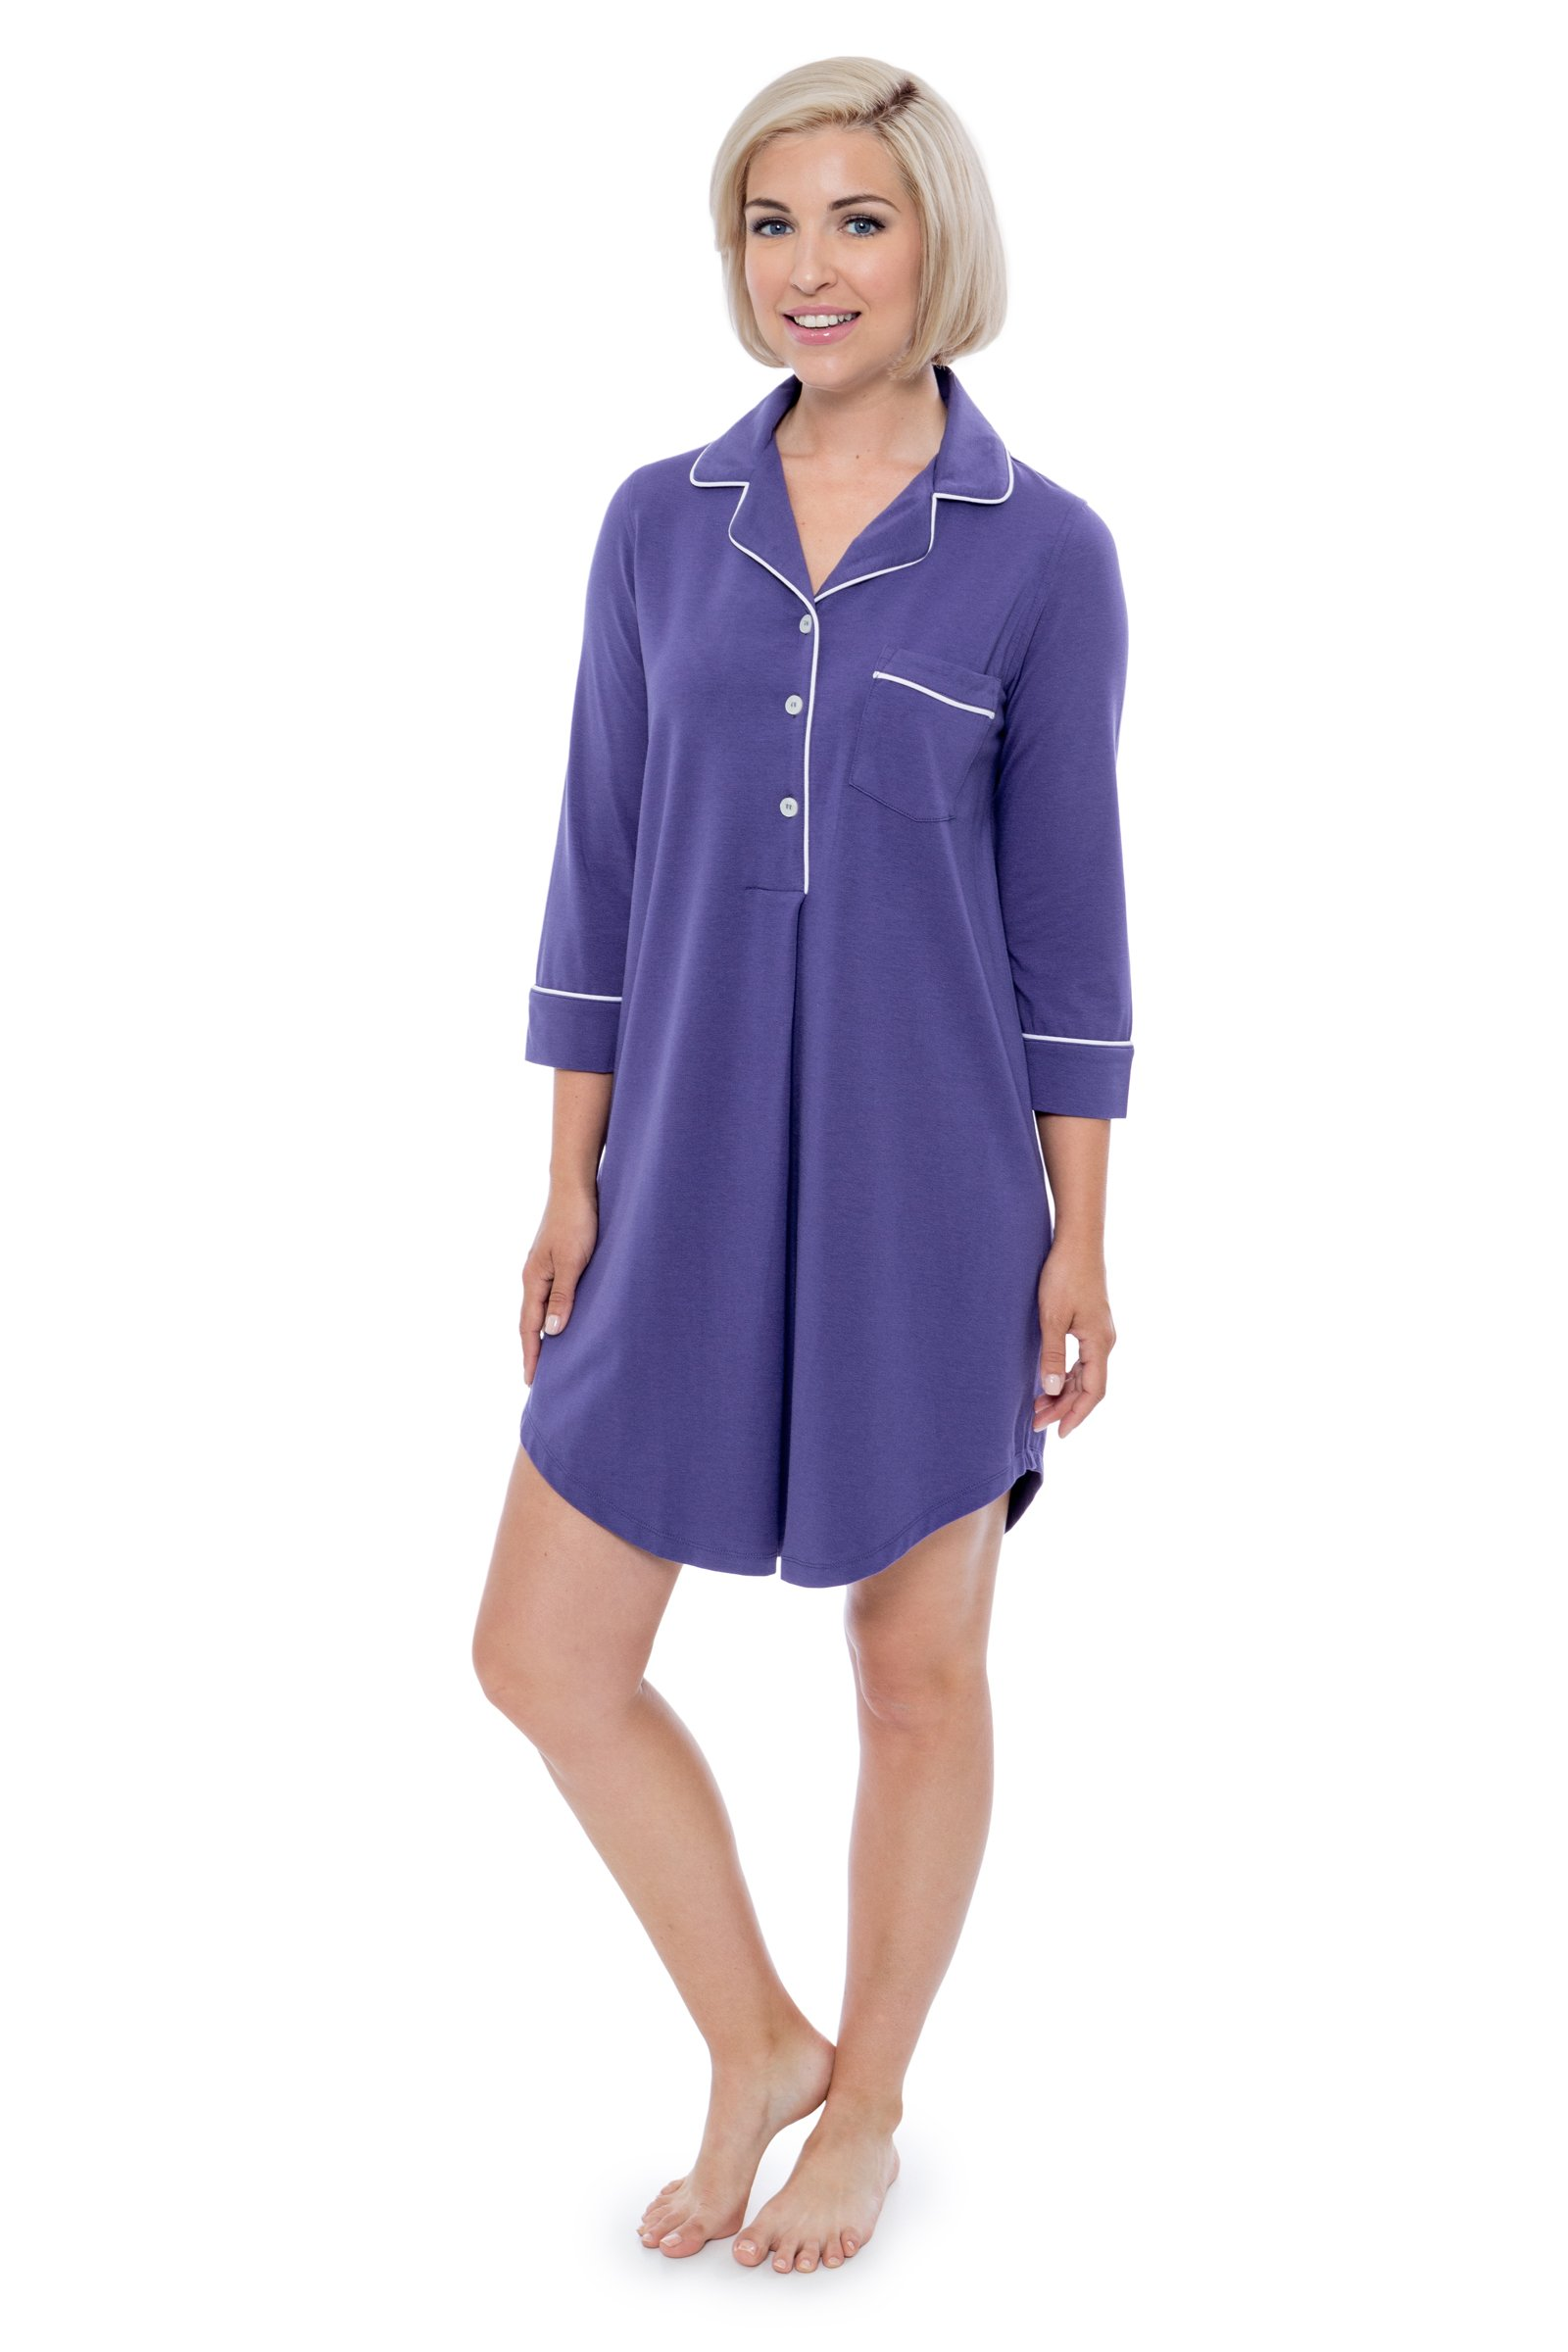 e7e5f92c347e9 Women's Nightshirt in Bamboo Viscose (Zenrest) Stylish Sleep Shirt by  Texere product image